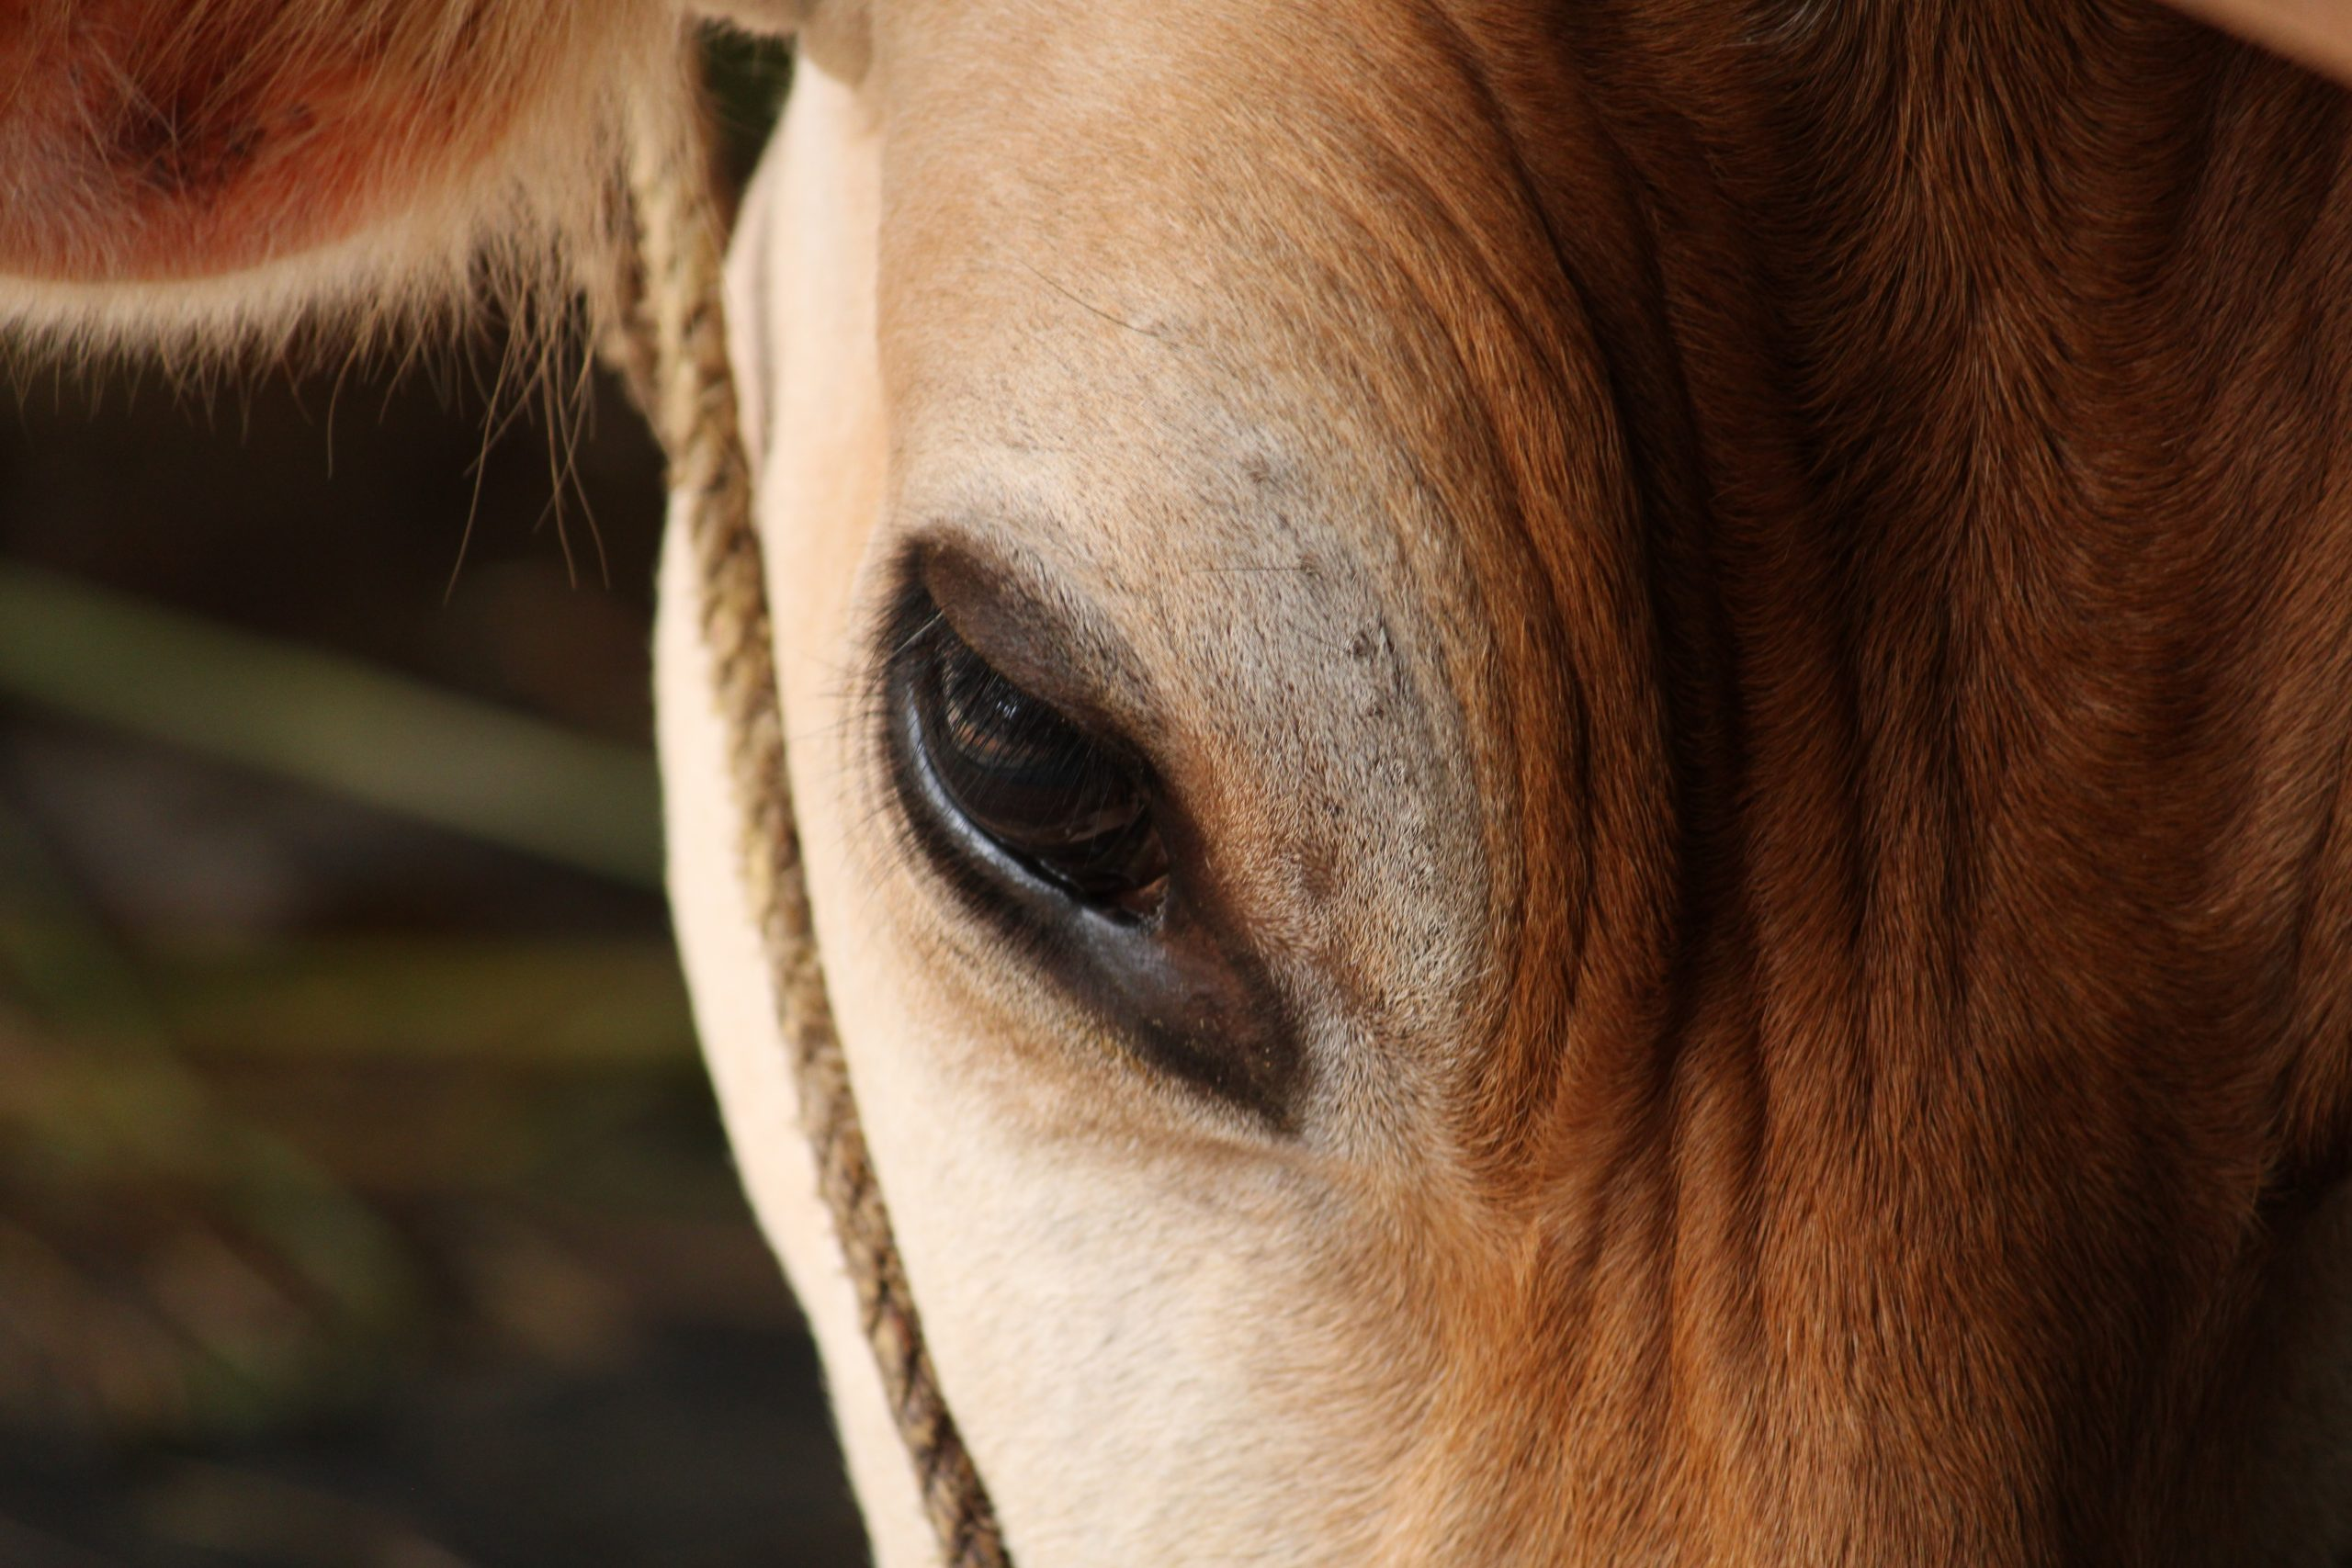 close up of cow's eye